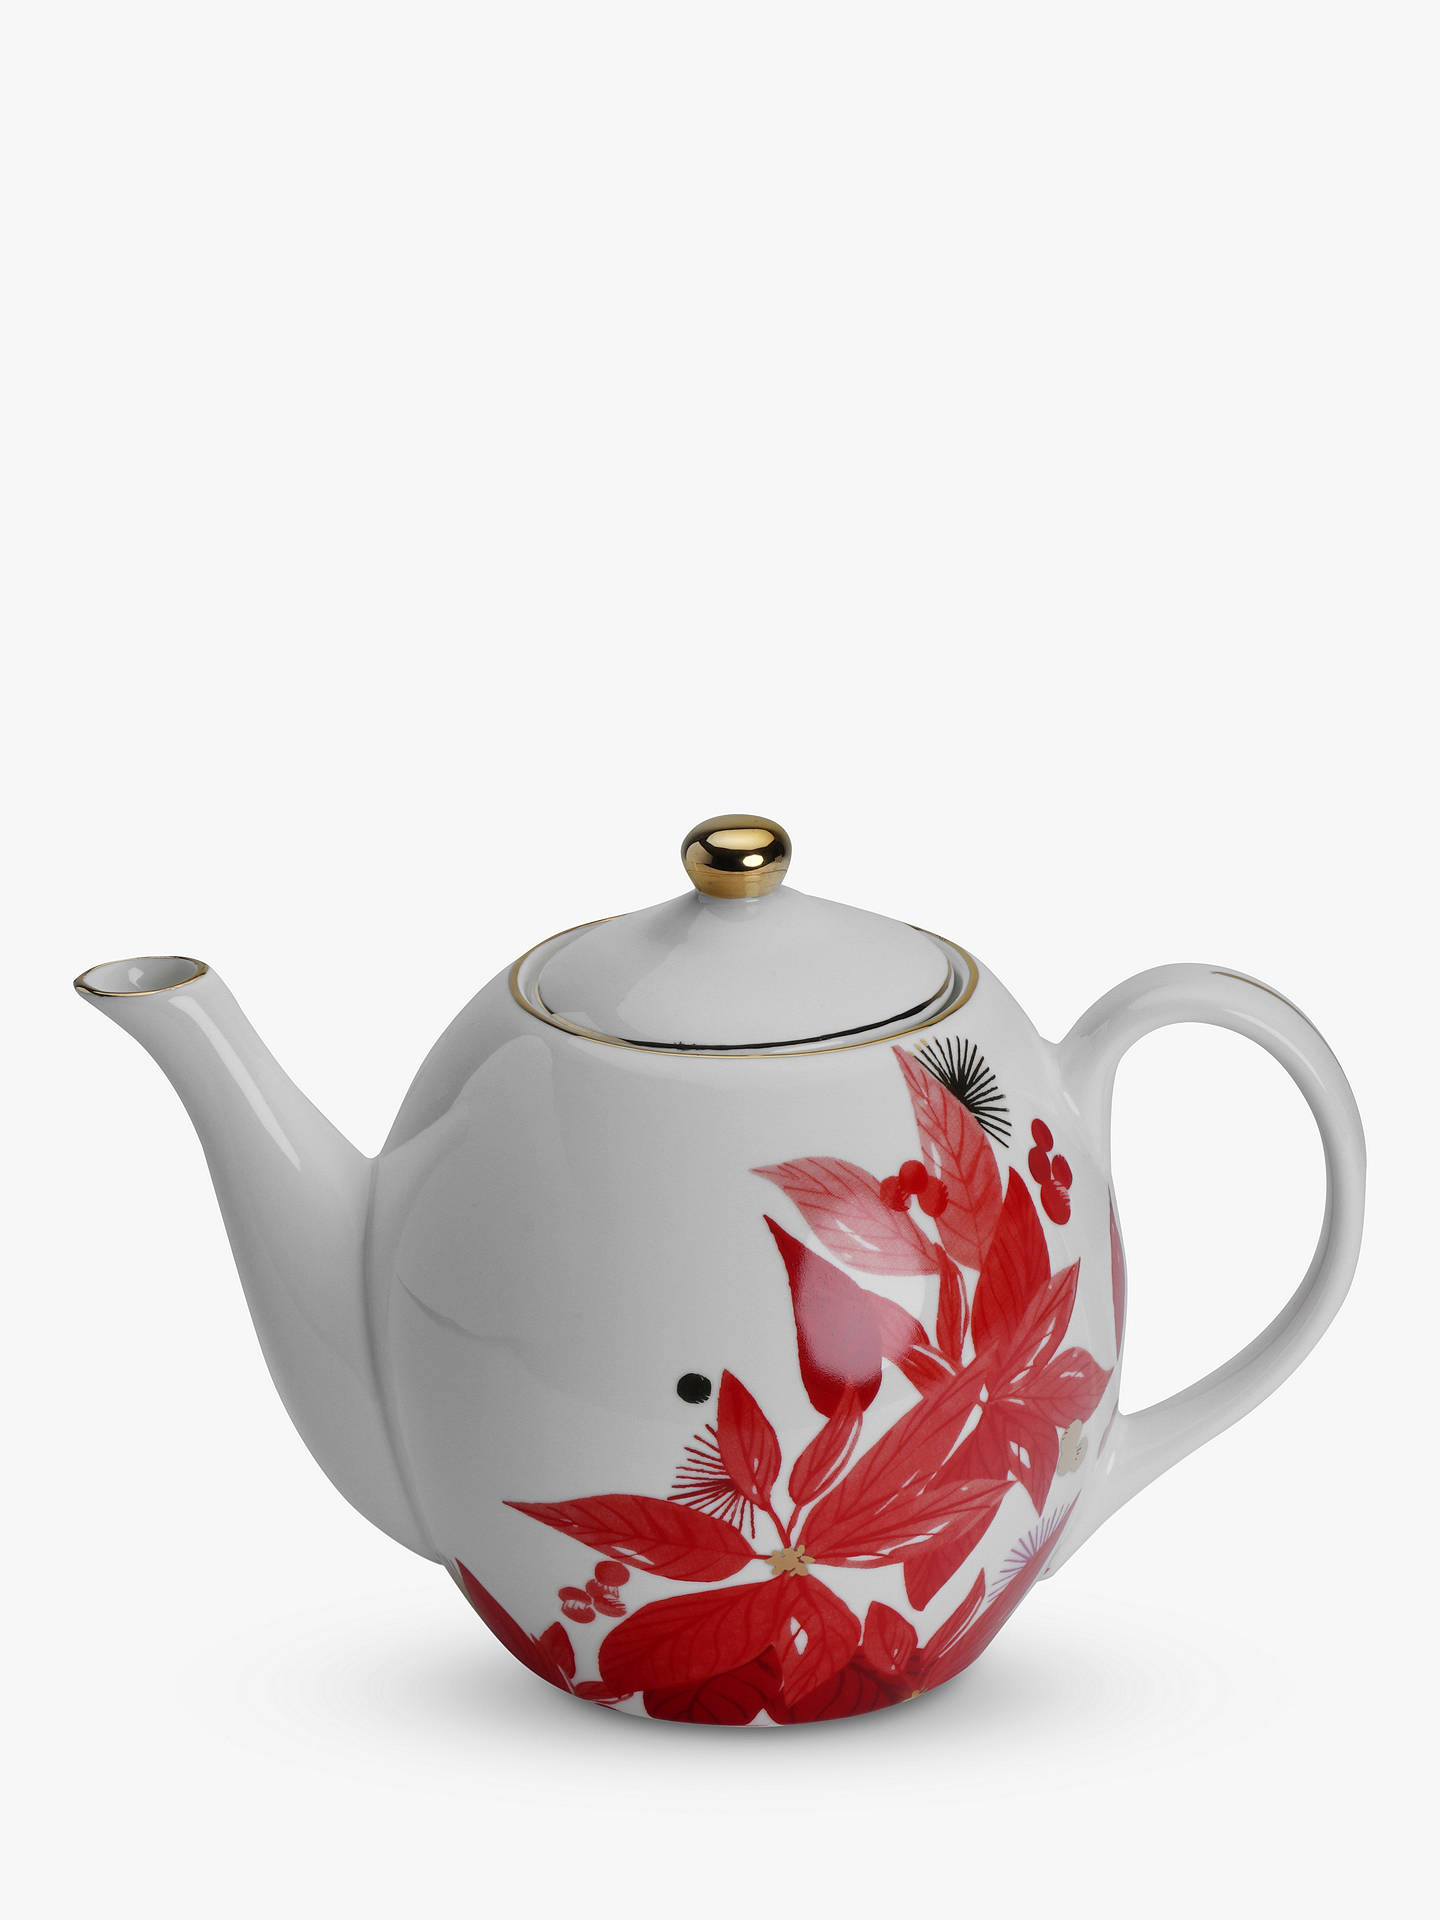 Buy Tokyo Design Studio Nippon Christmas Poinsettia Teapot, 1.3L, White/Red Online at johnlewis.com